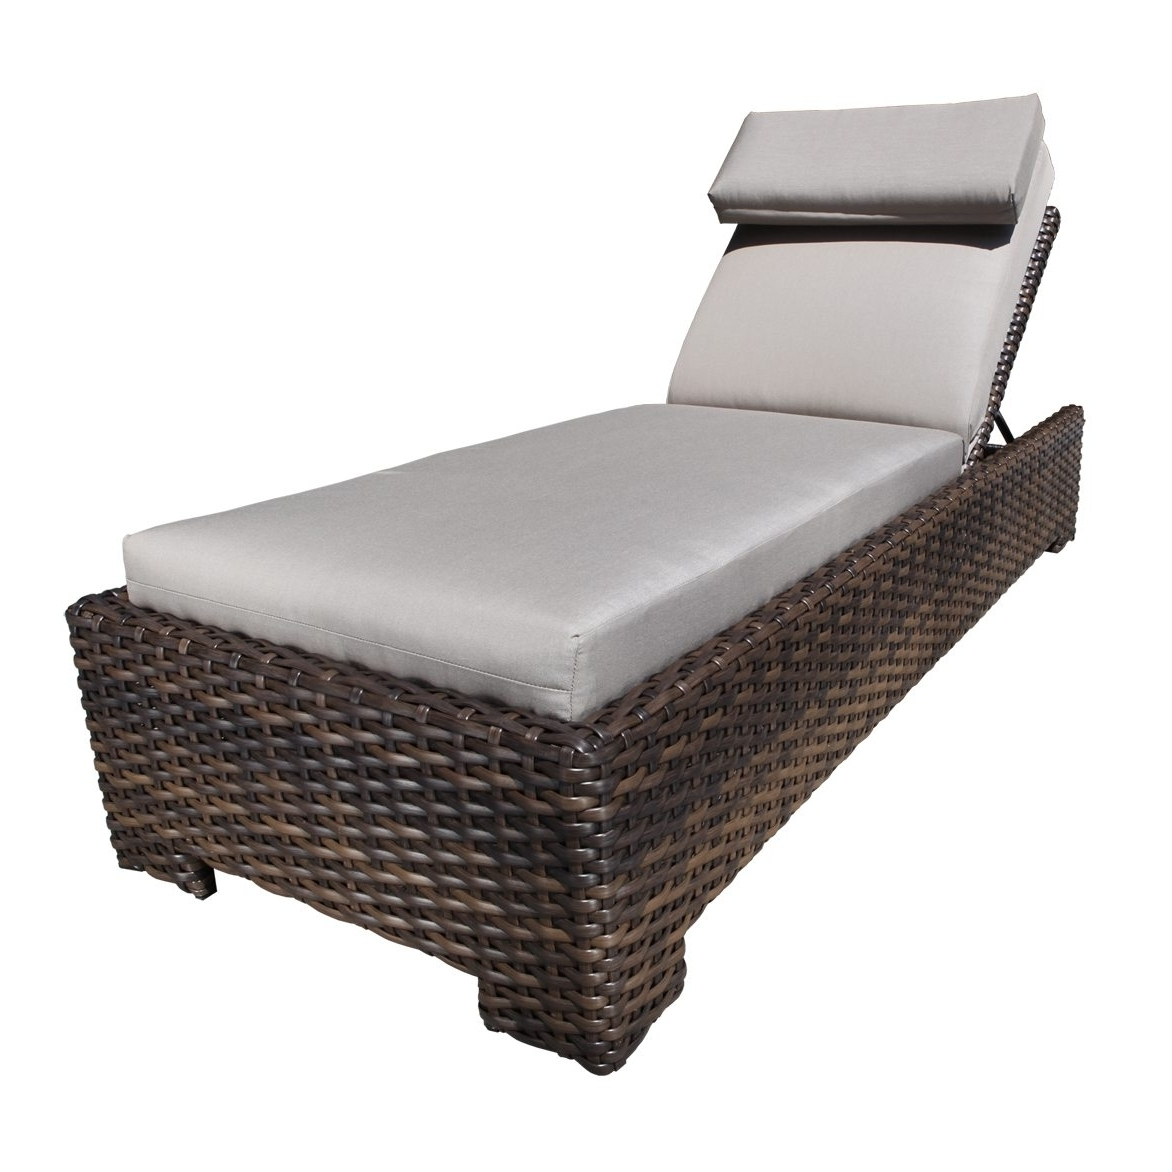 Famous Gorgeous Patio Chaise Lounge Chair Lounge Outdoor 16 Exterior Inside Outdoor Pool Chaise Lounge Chairs (View 14 of 15)